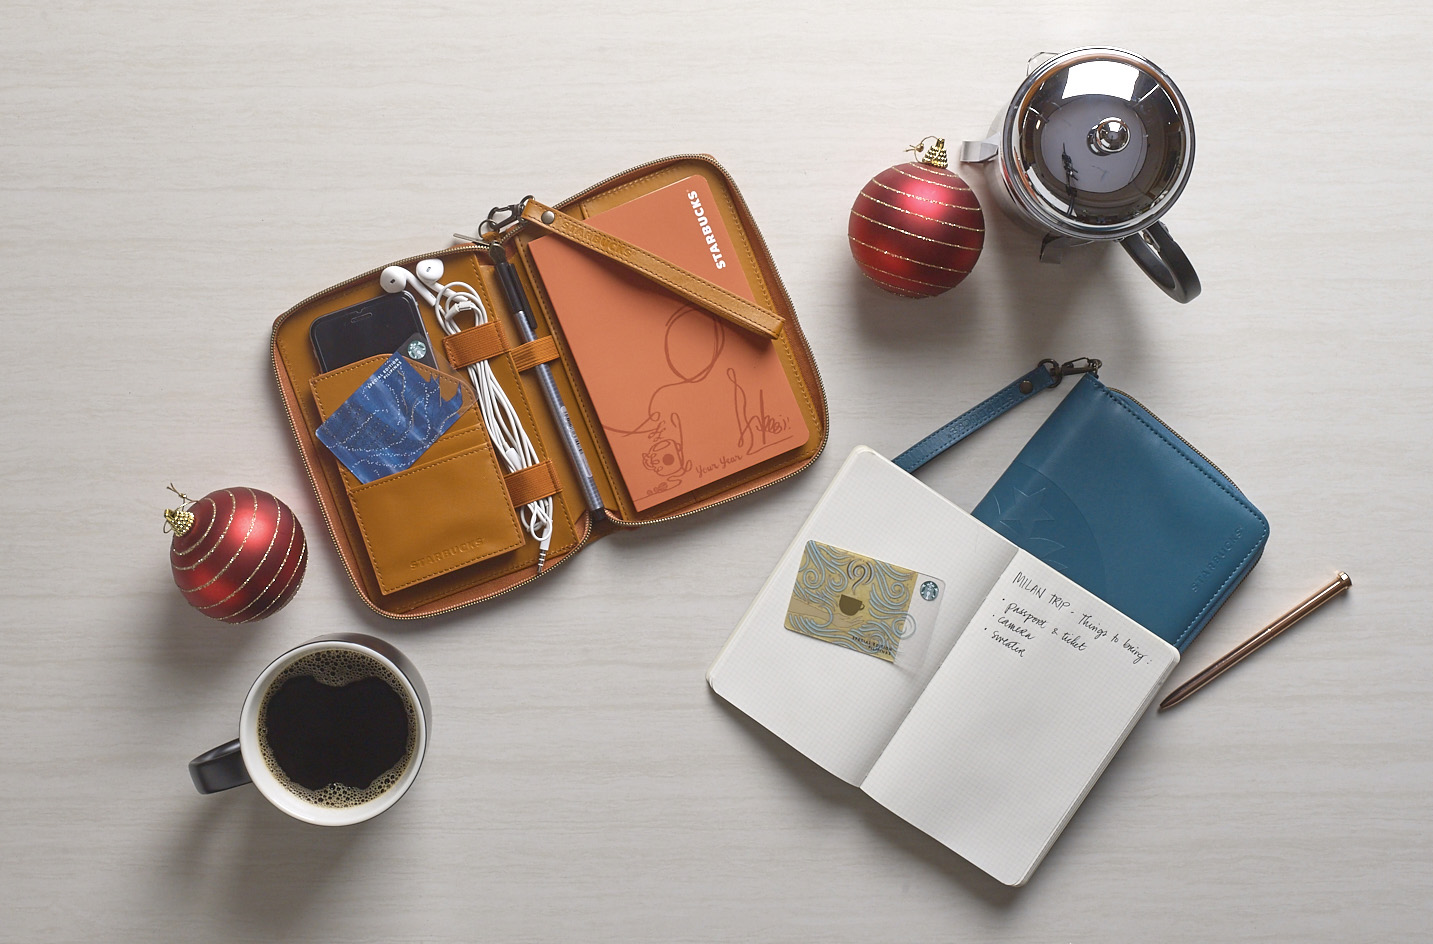 Starbucks 2019 Travel Organizer